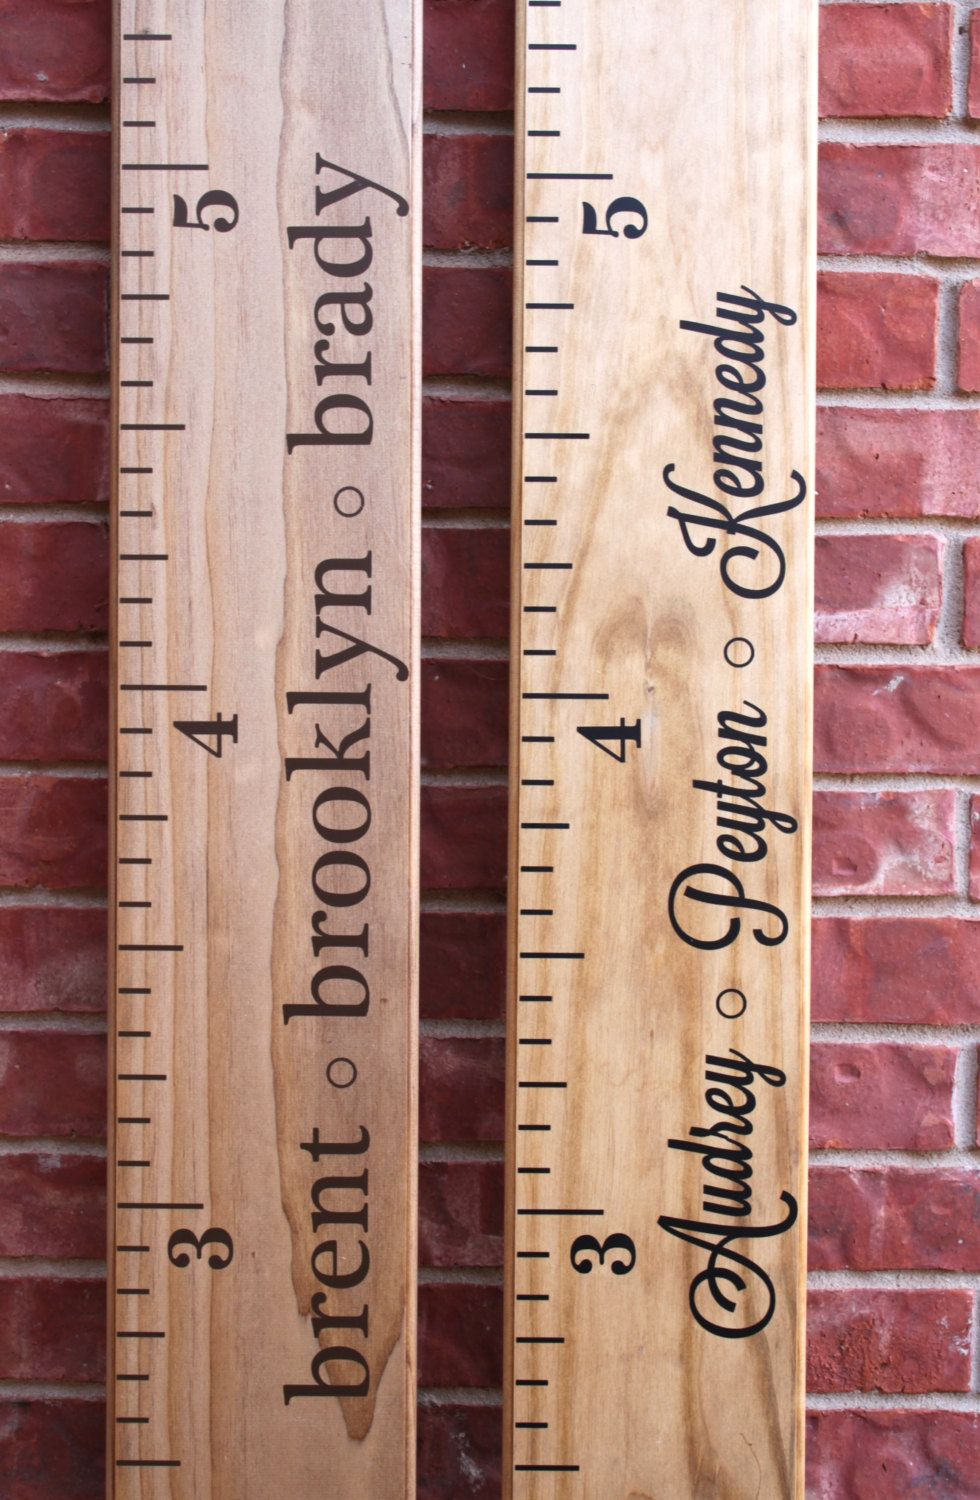 Growth chart ruler add on custom personalization decal for growth chart ruler custom personalization decal for the side individual names 800 geenschuldenfo Choice Image